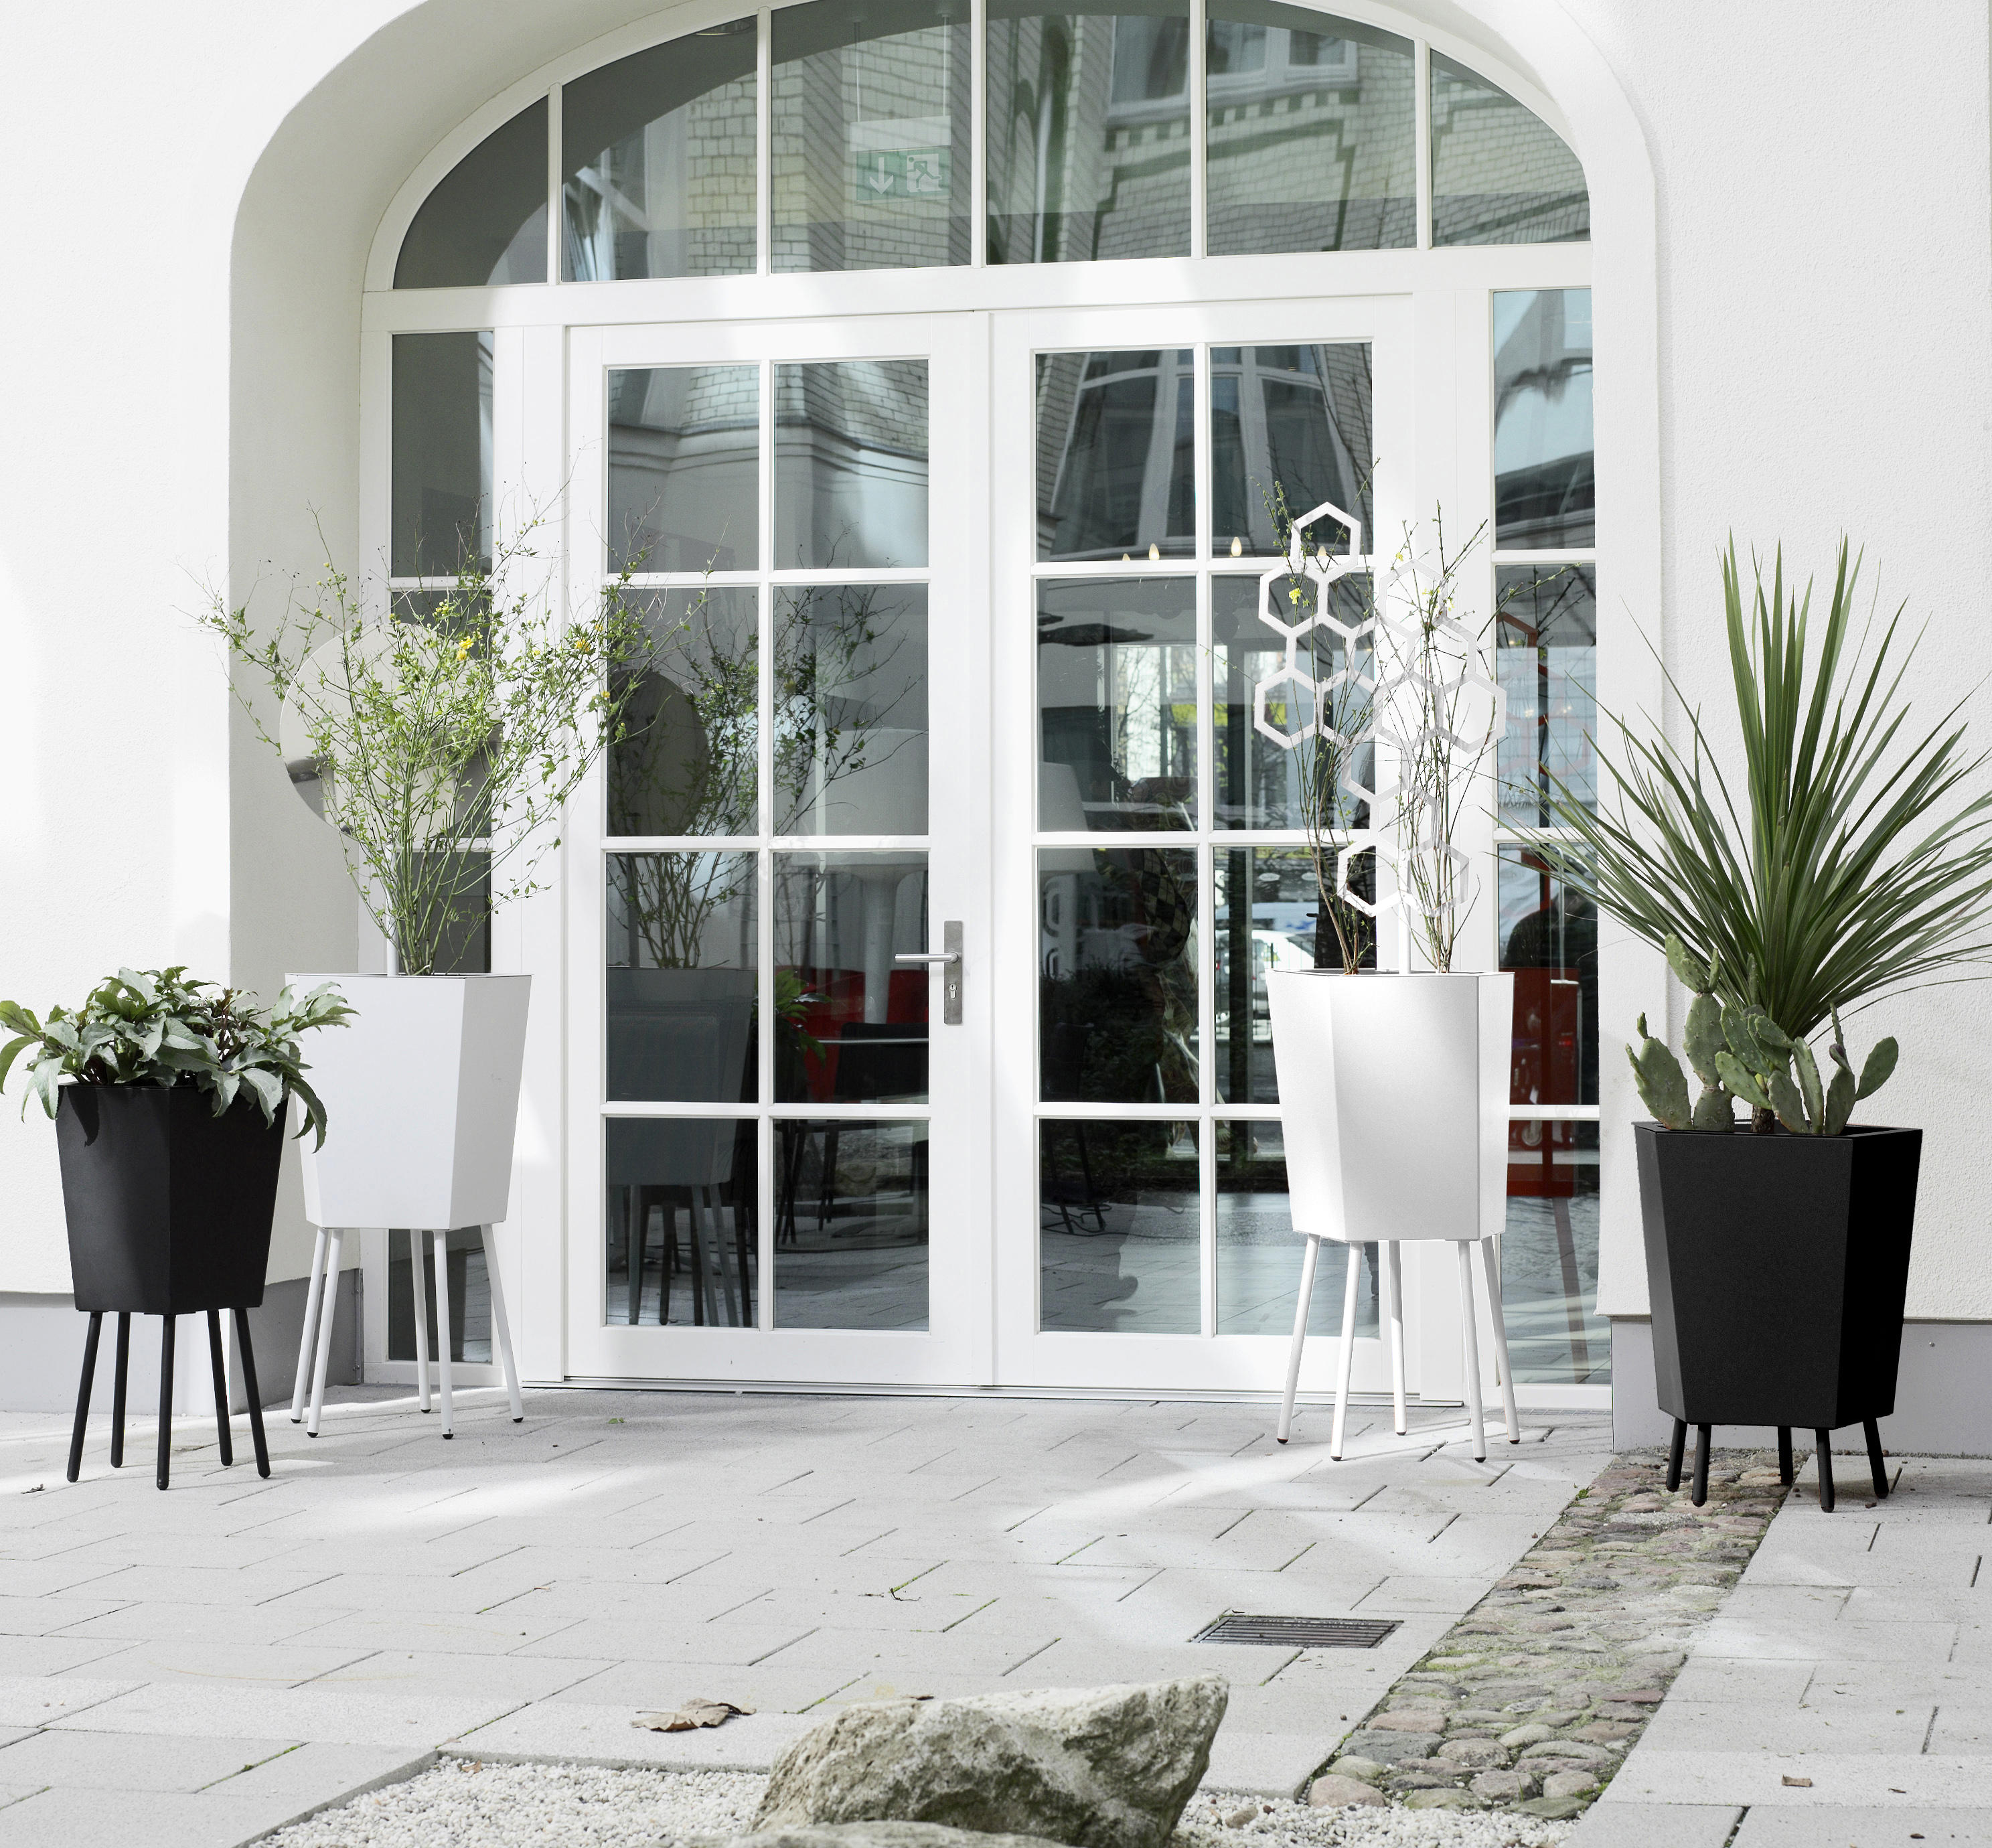 ELEVATION PLANTER Flowerpots Planters From FLORA Architonic - How to check elevation